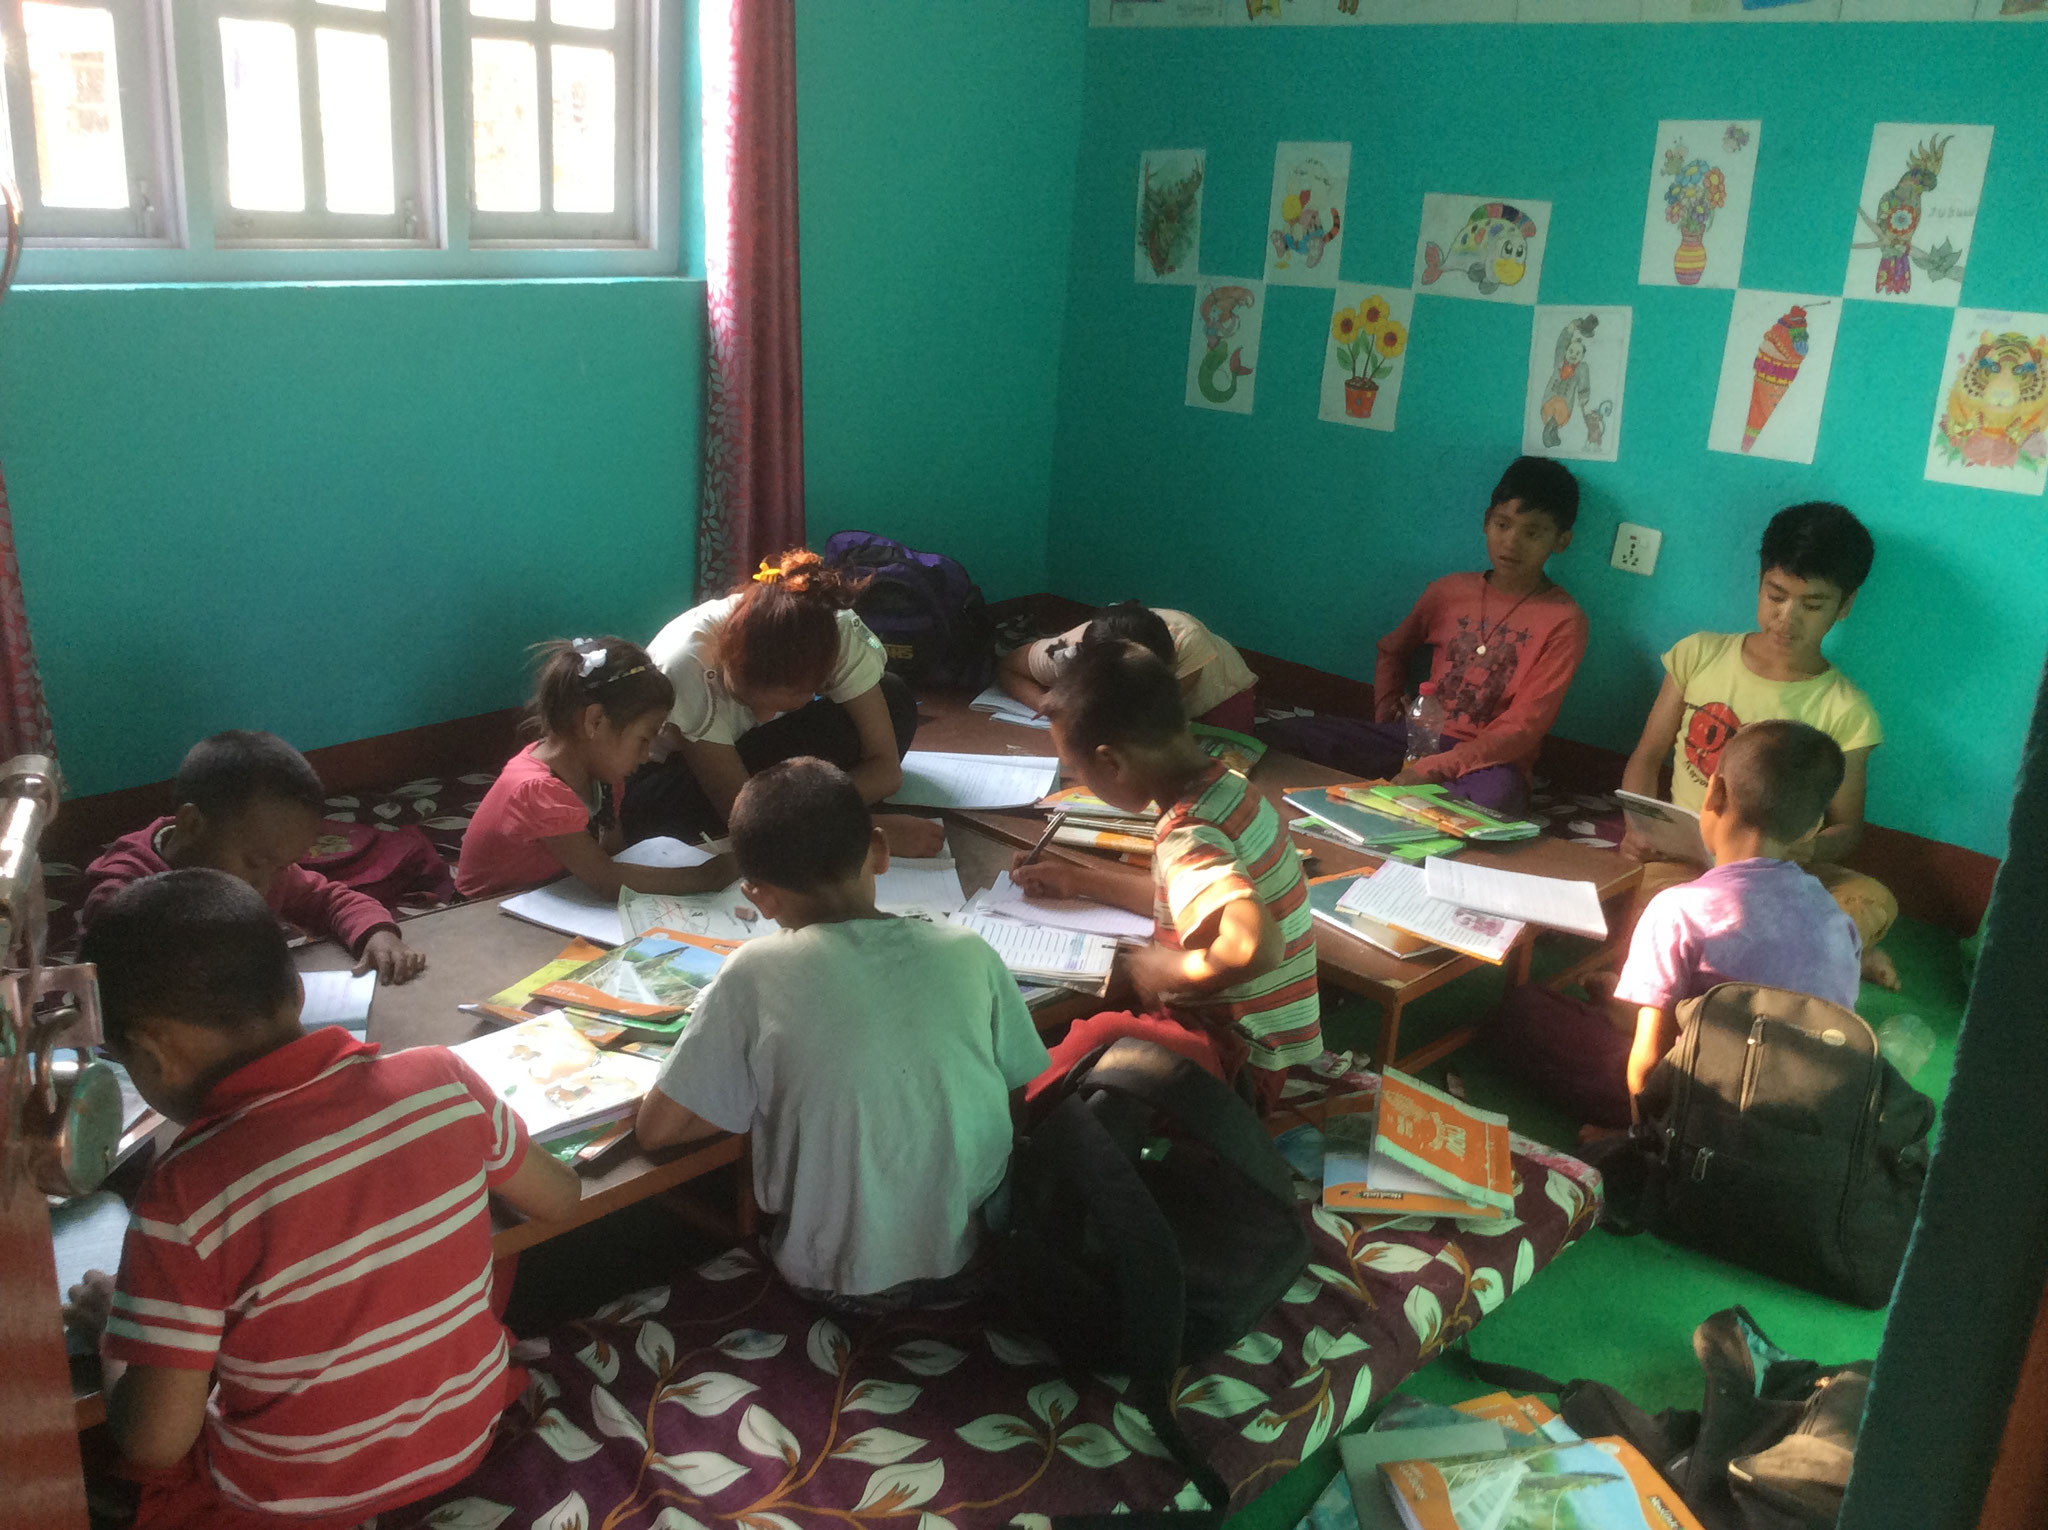 Schoolroom in the house